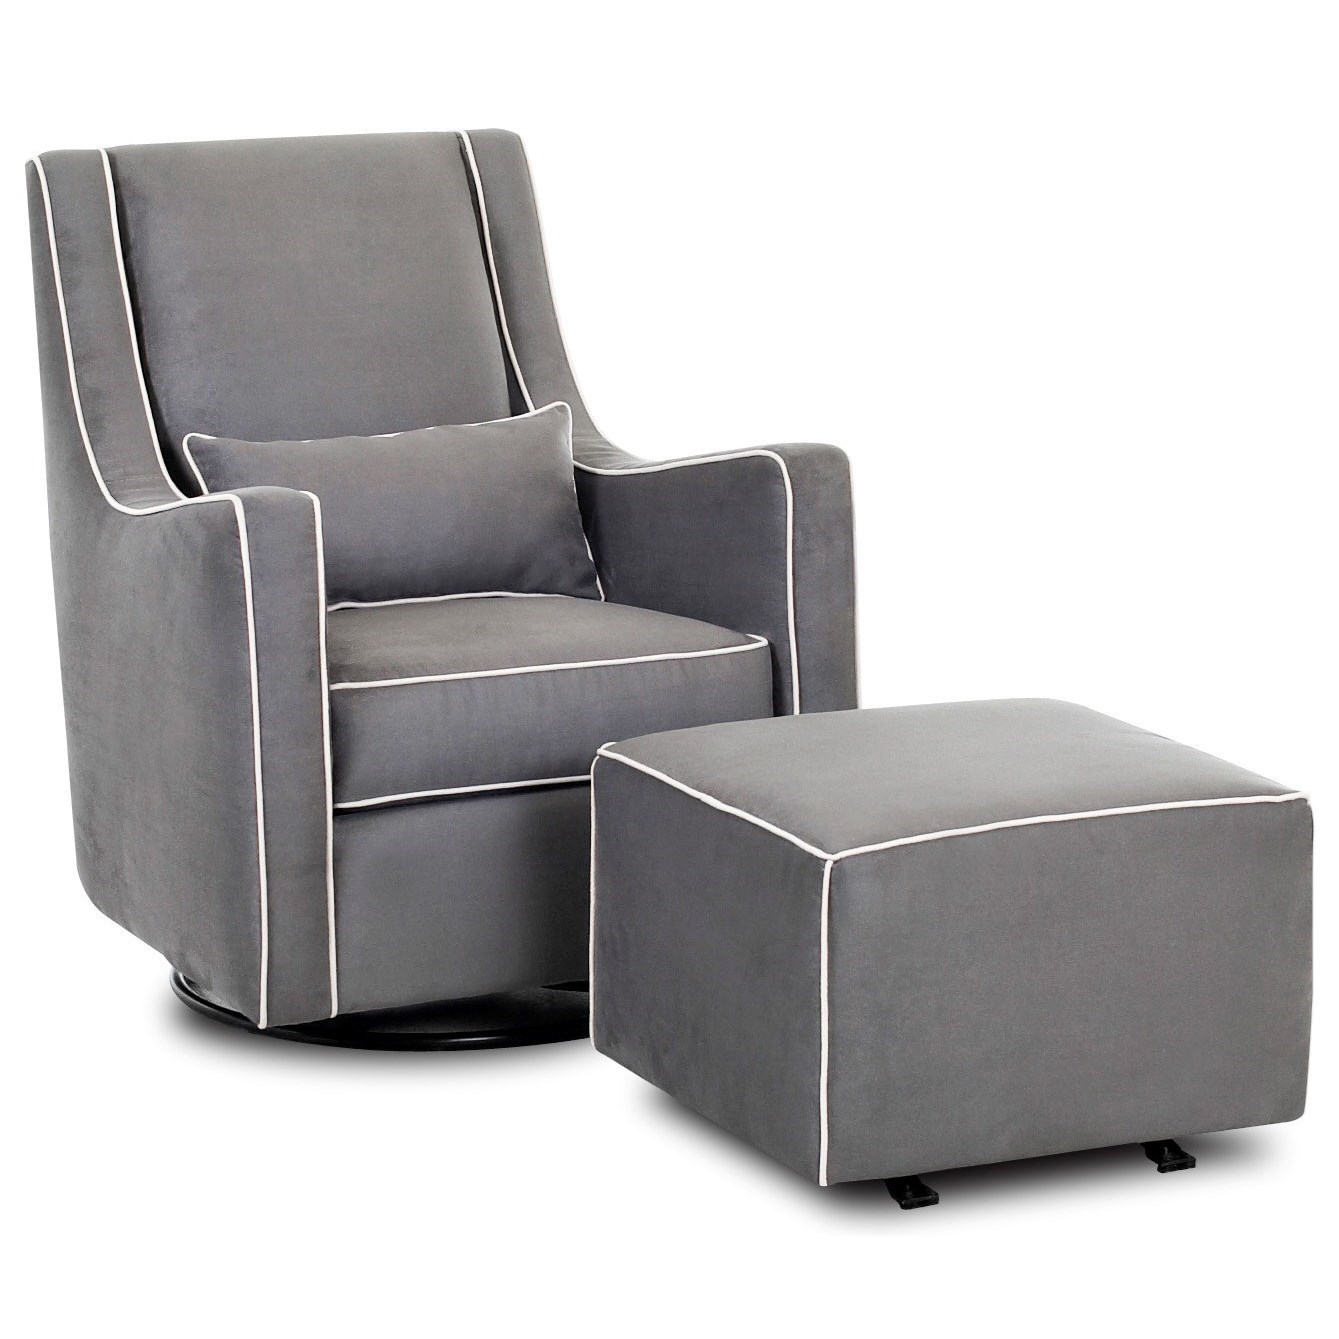 Gliding Chair Chairs And Accents Contemporary Lacey Swivel Glider Chair And Ottoman Set By Klaussner At Miller Home